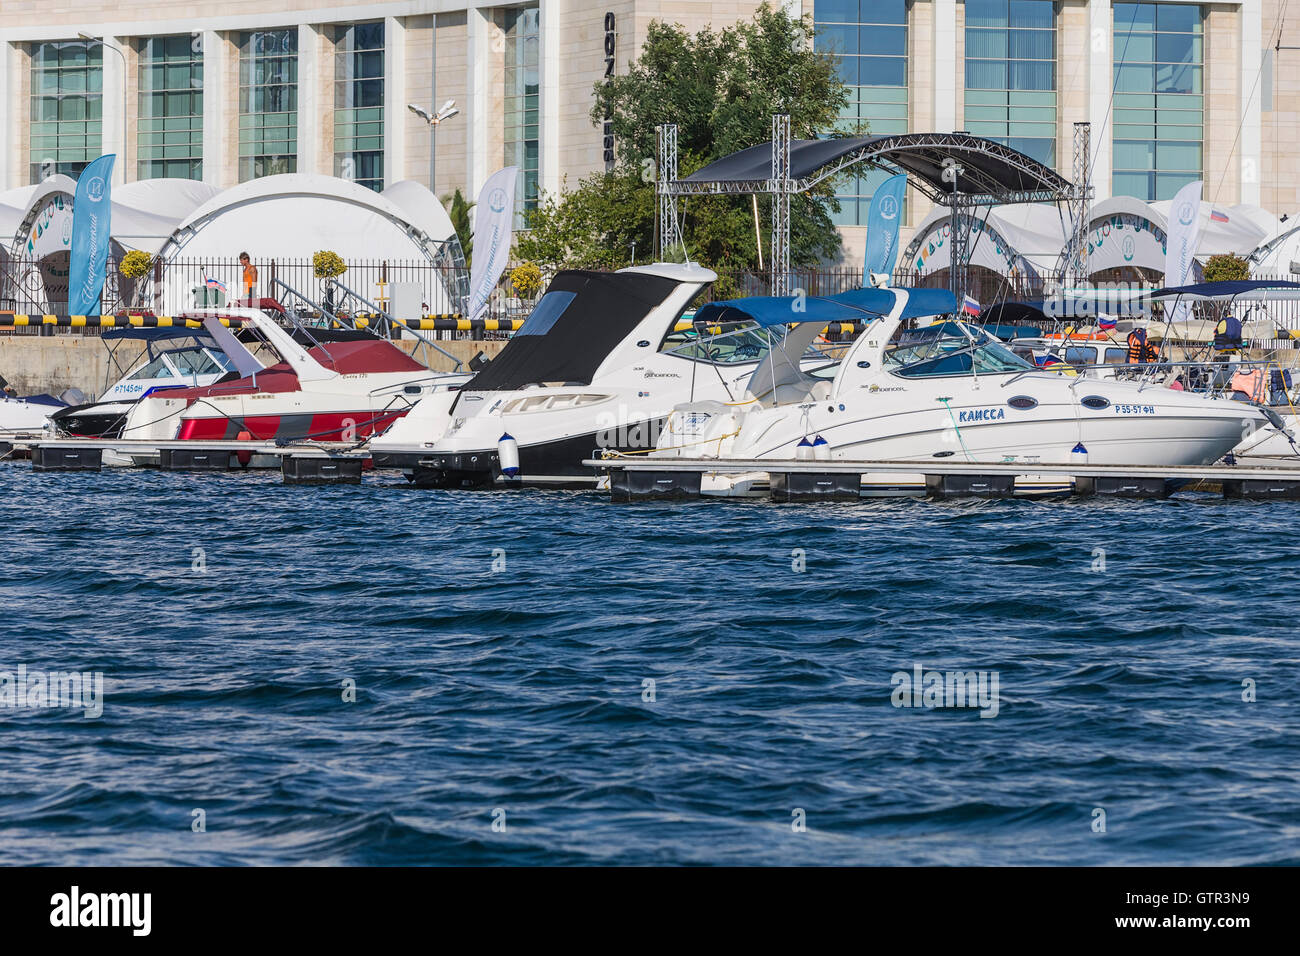 Harbor with boats at the pier, Sochi, Russia. - Stock Image